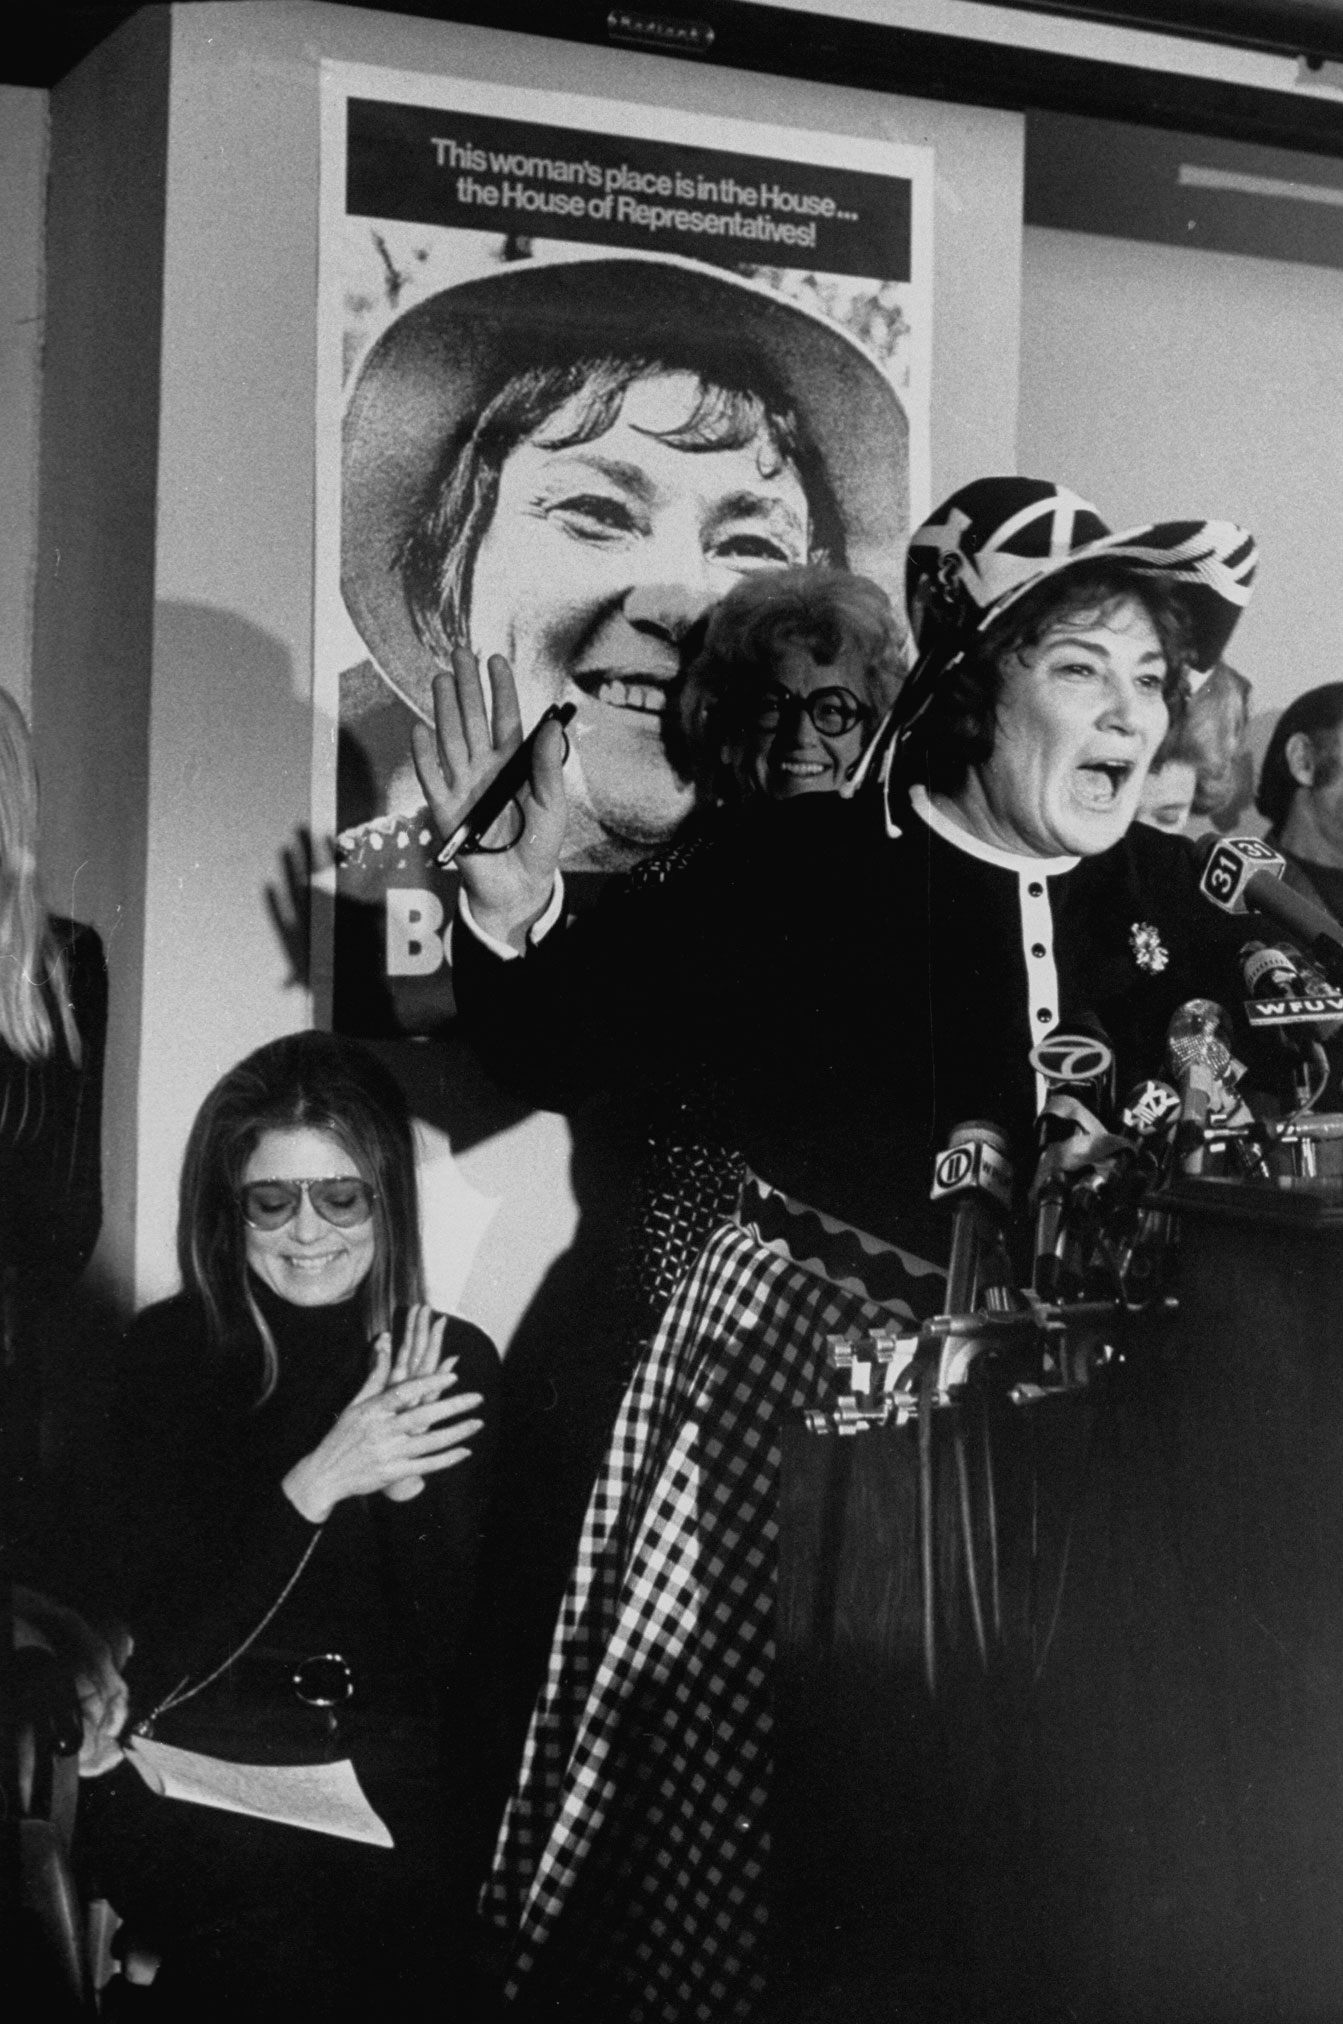 <b>Caption from LIFE.</b> Bella announces her candidacy. Applauding are supporters Gloria Steinem, left, and former Ms. publisher Elizabeth Forsling Harris.